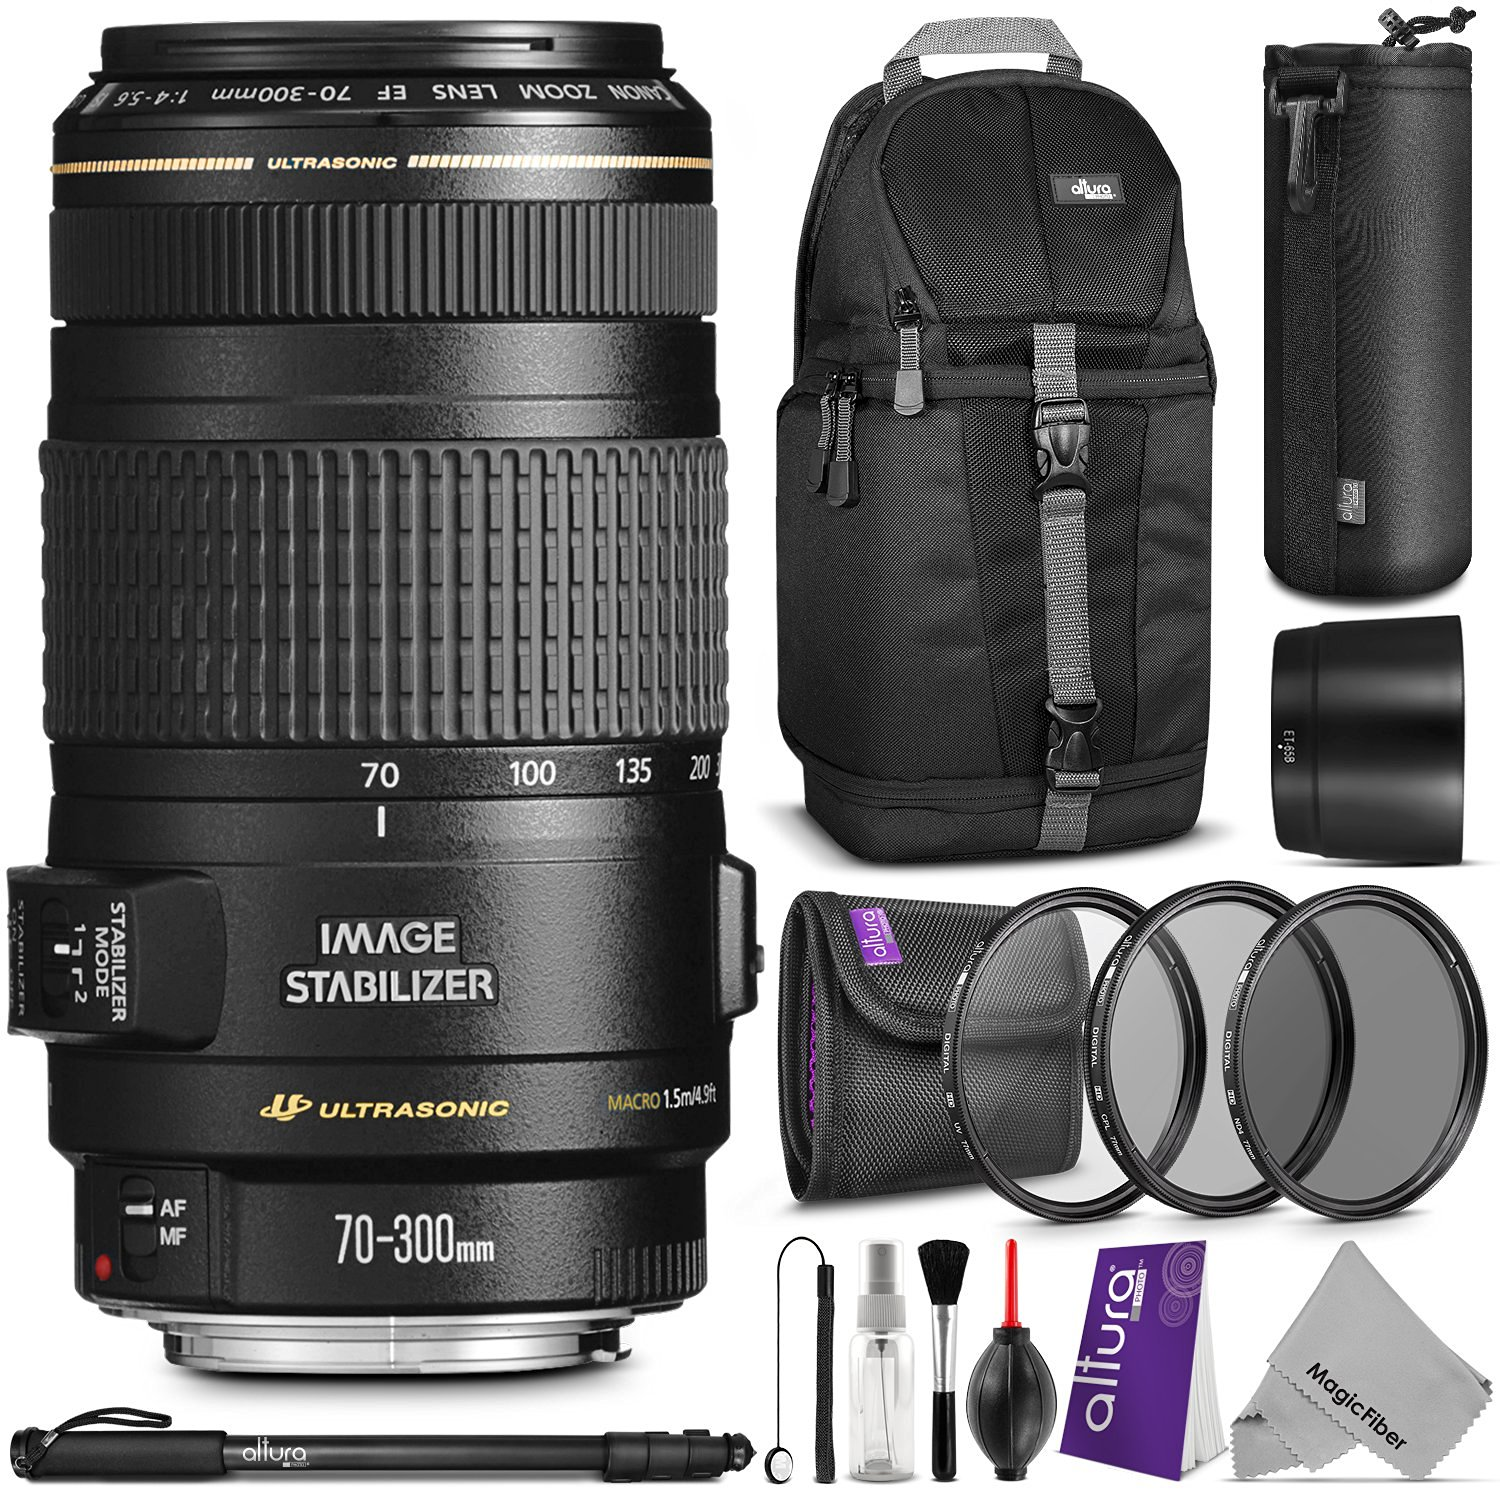 Cheap Photo Camera Lens Find Photo Camera Lens Deals On Line At